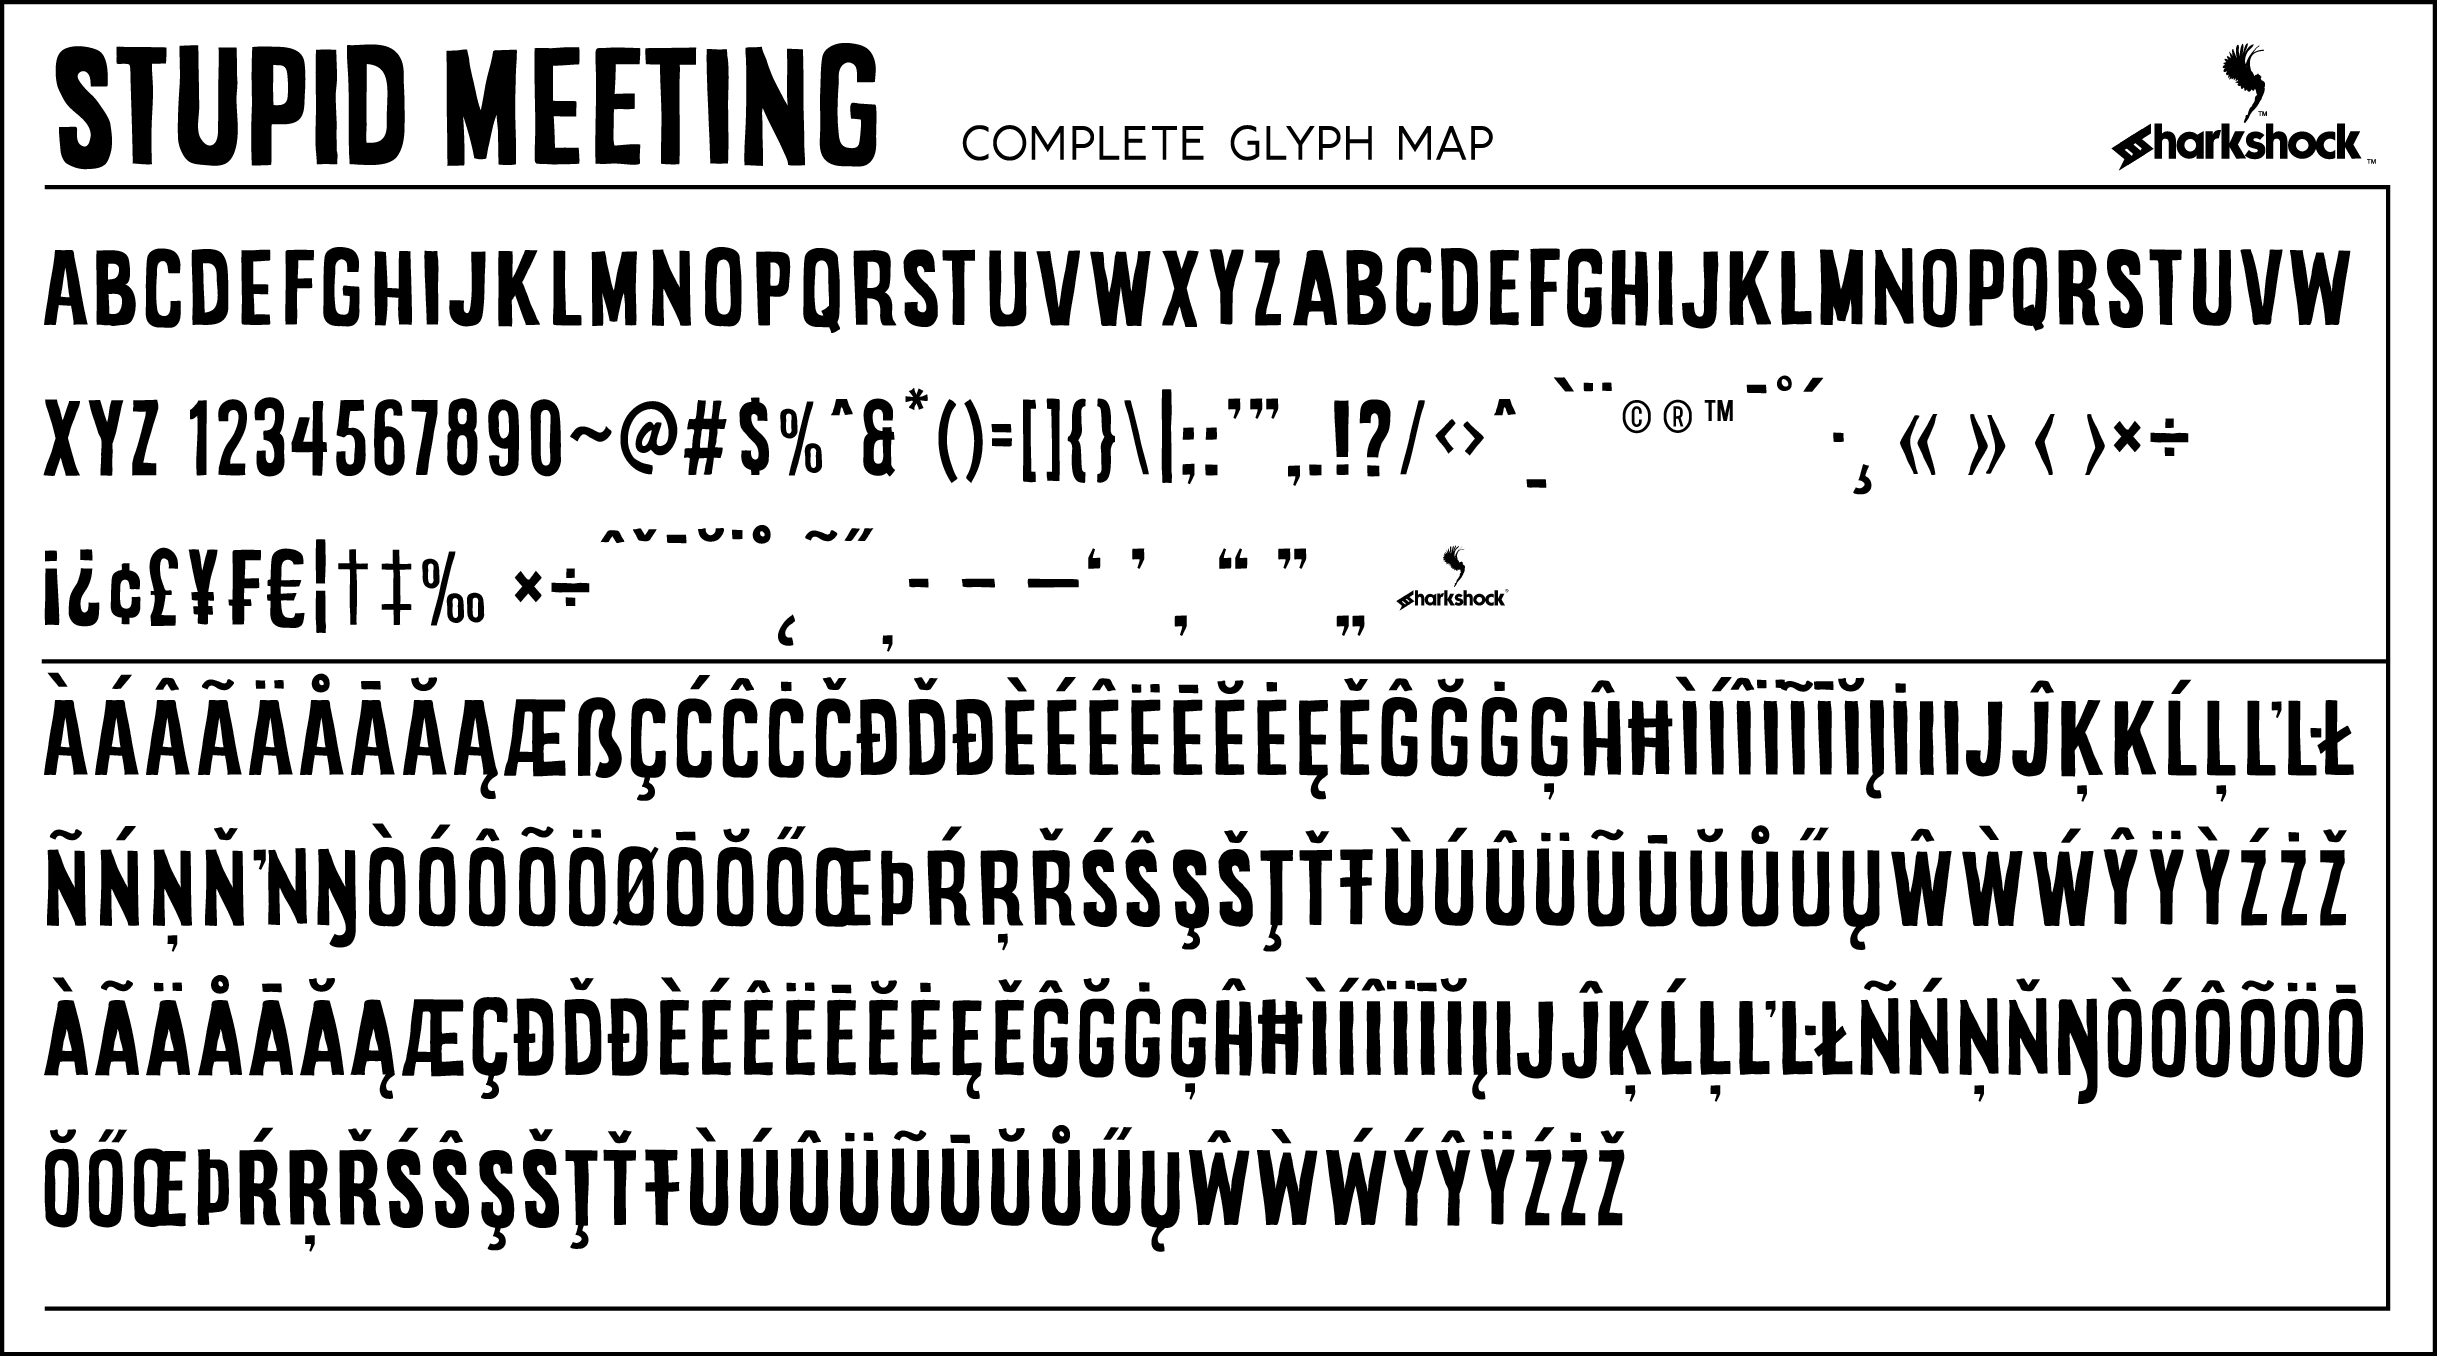 Image gallery for stupid meeting font fontspace sample image of stupid meeting font by sharkshock altavistaventures Image collections